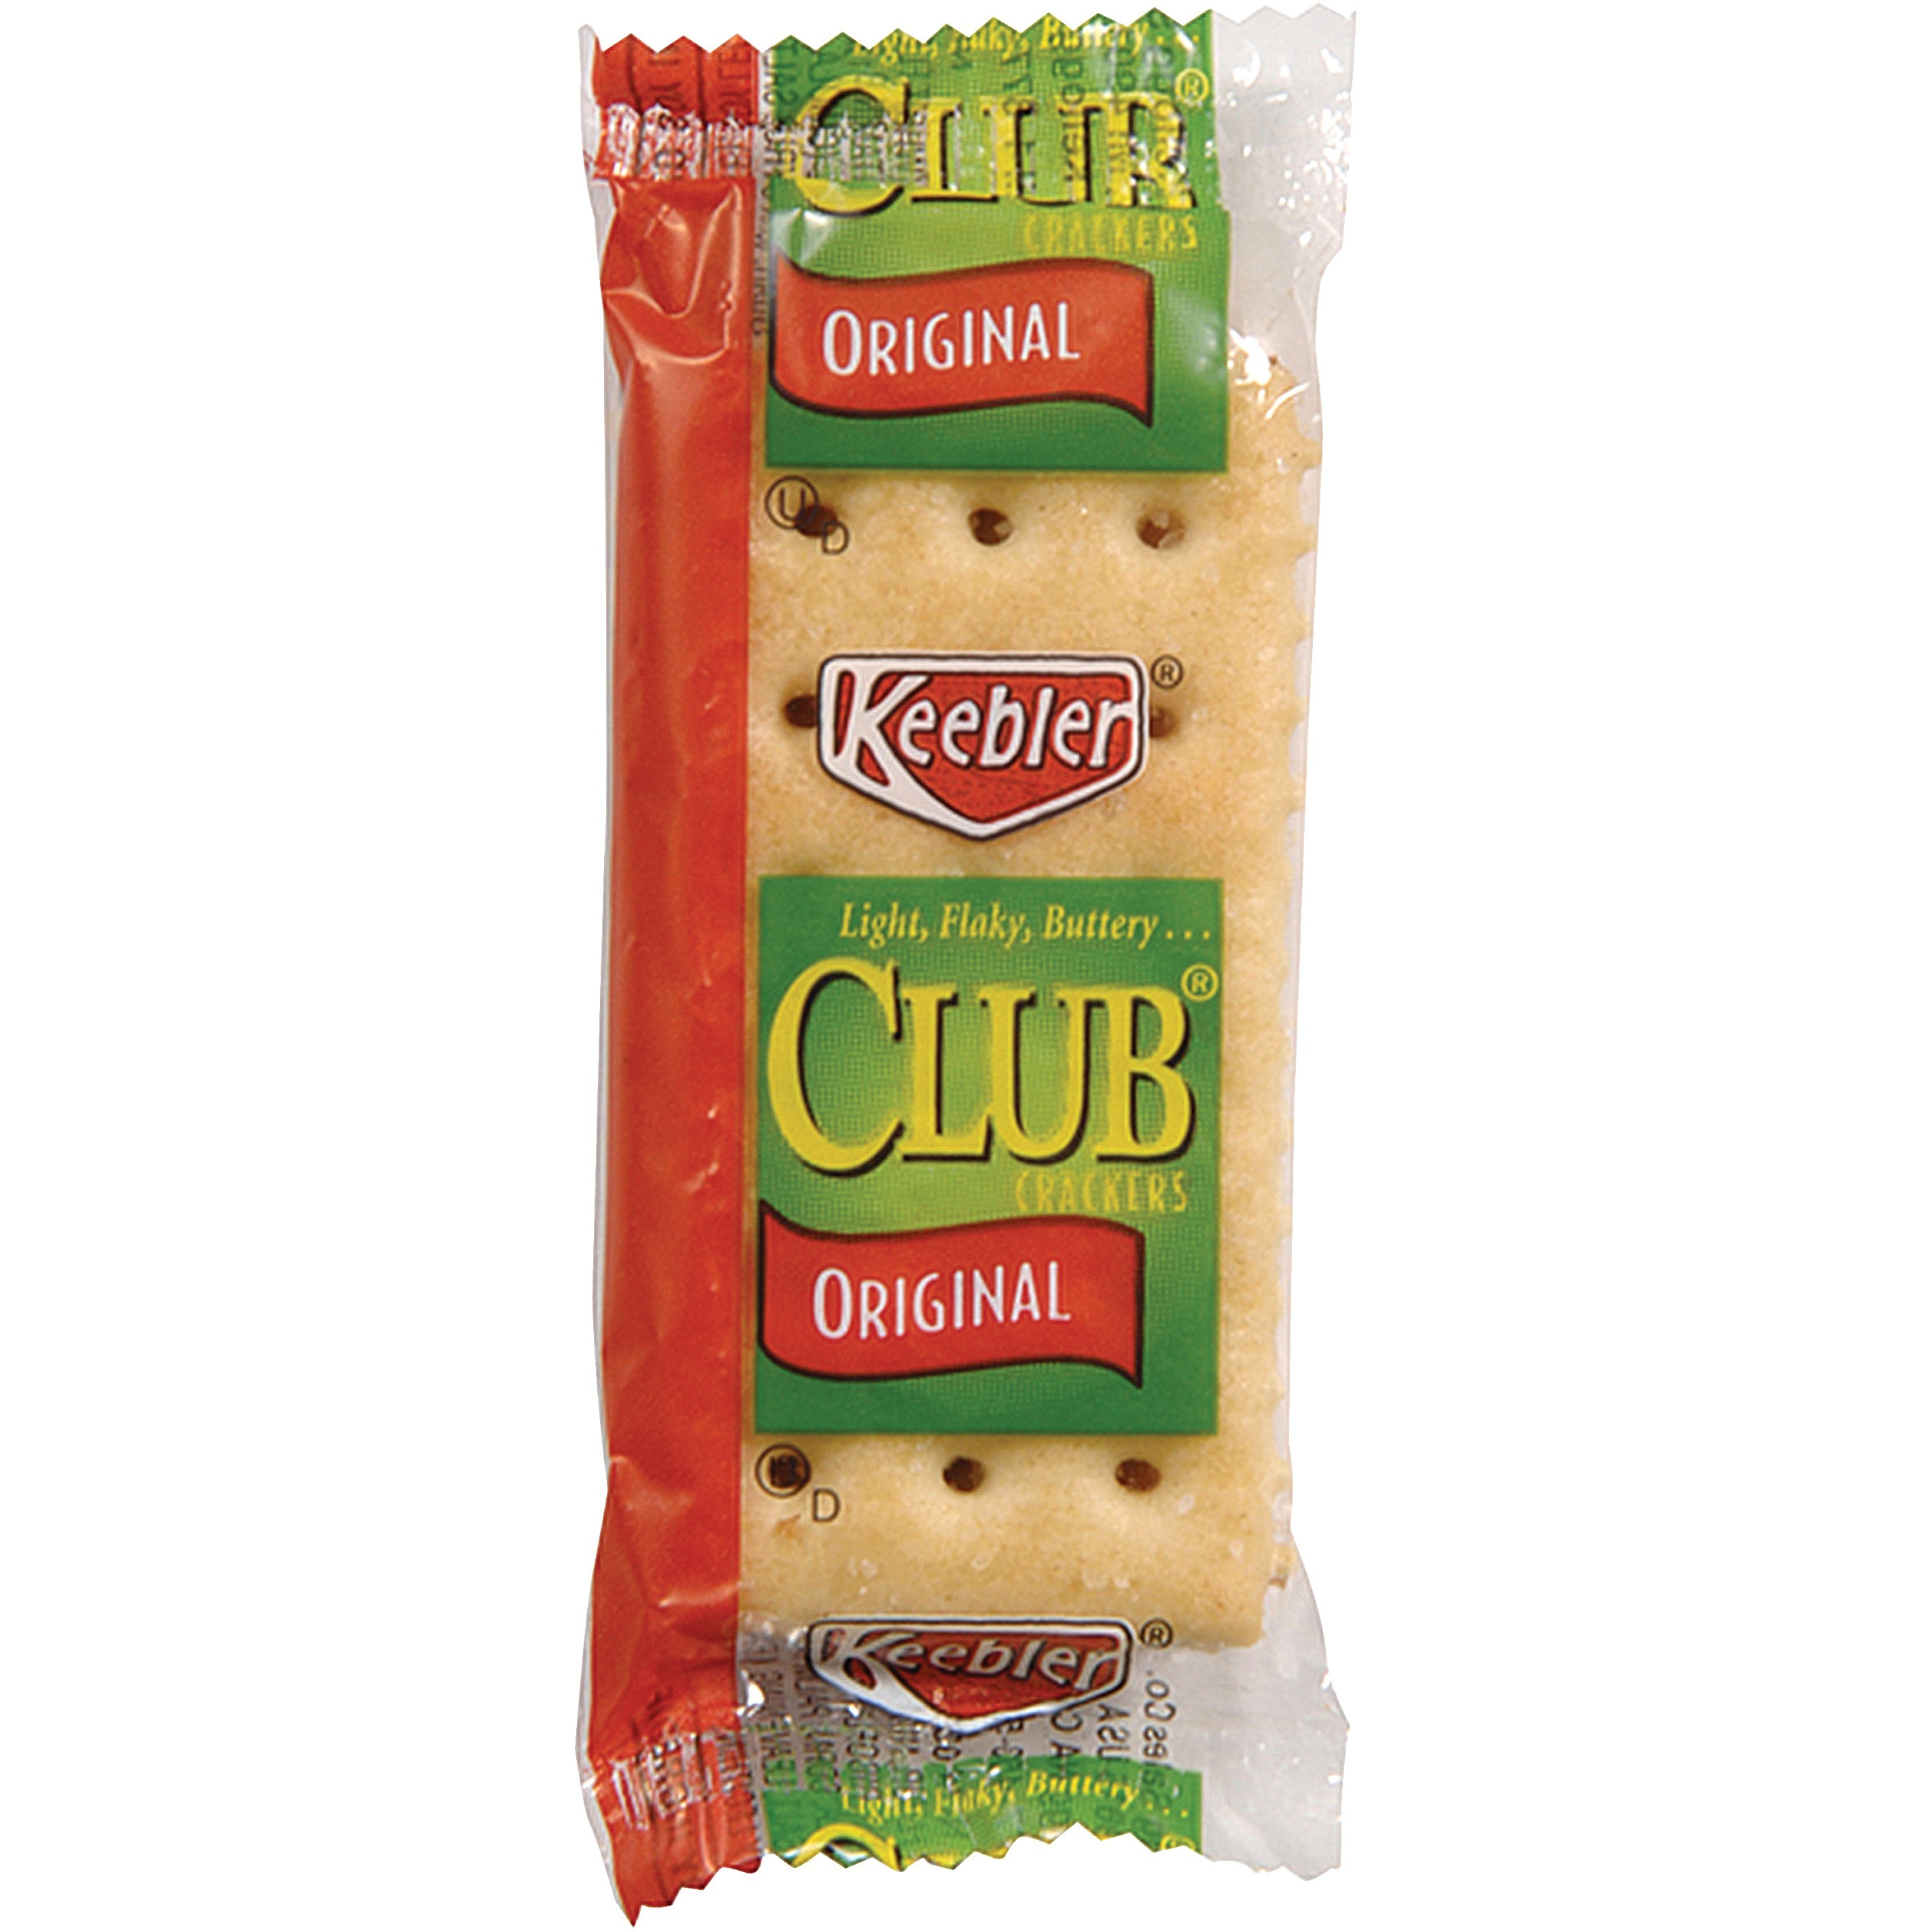 Keebler, KEB01032, Club Crackers Packets, 300 / Carton